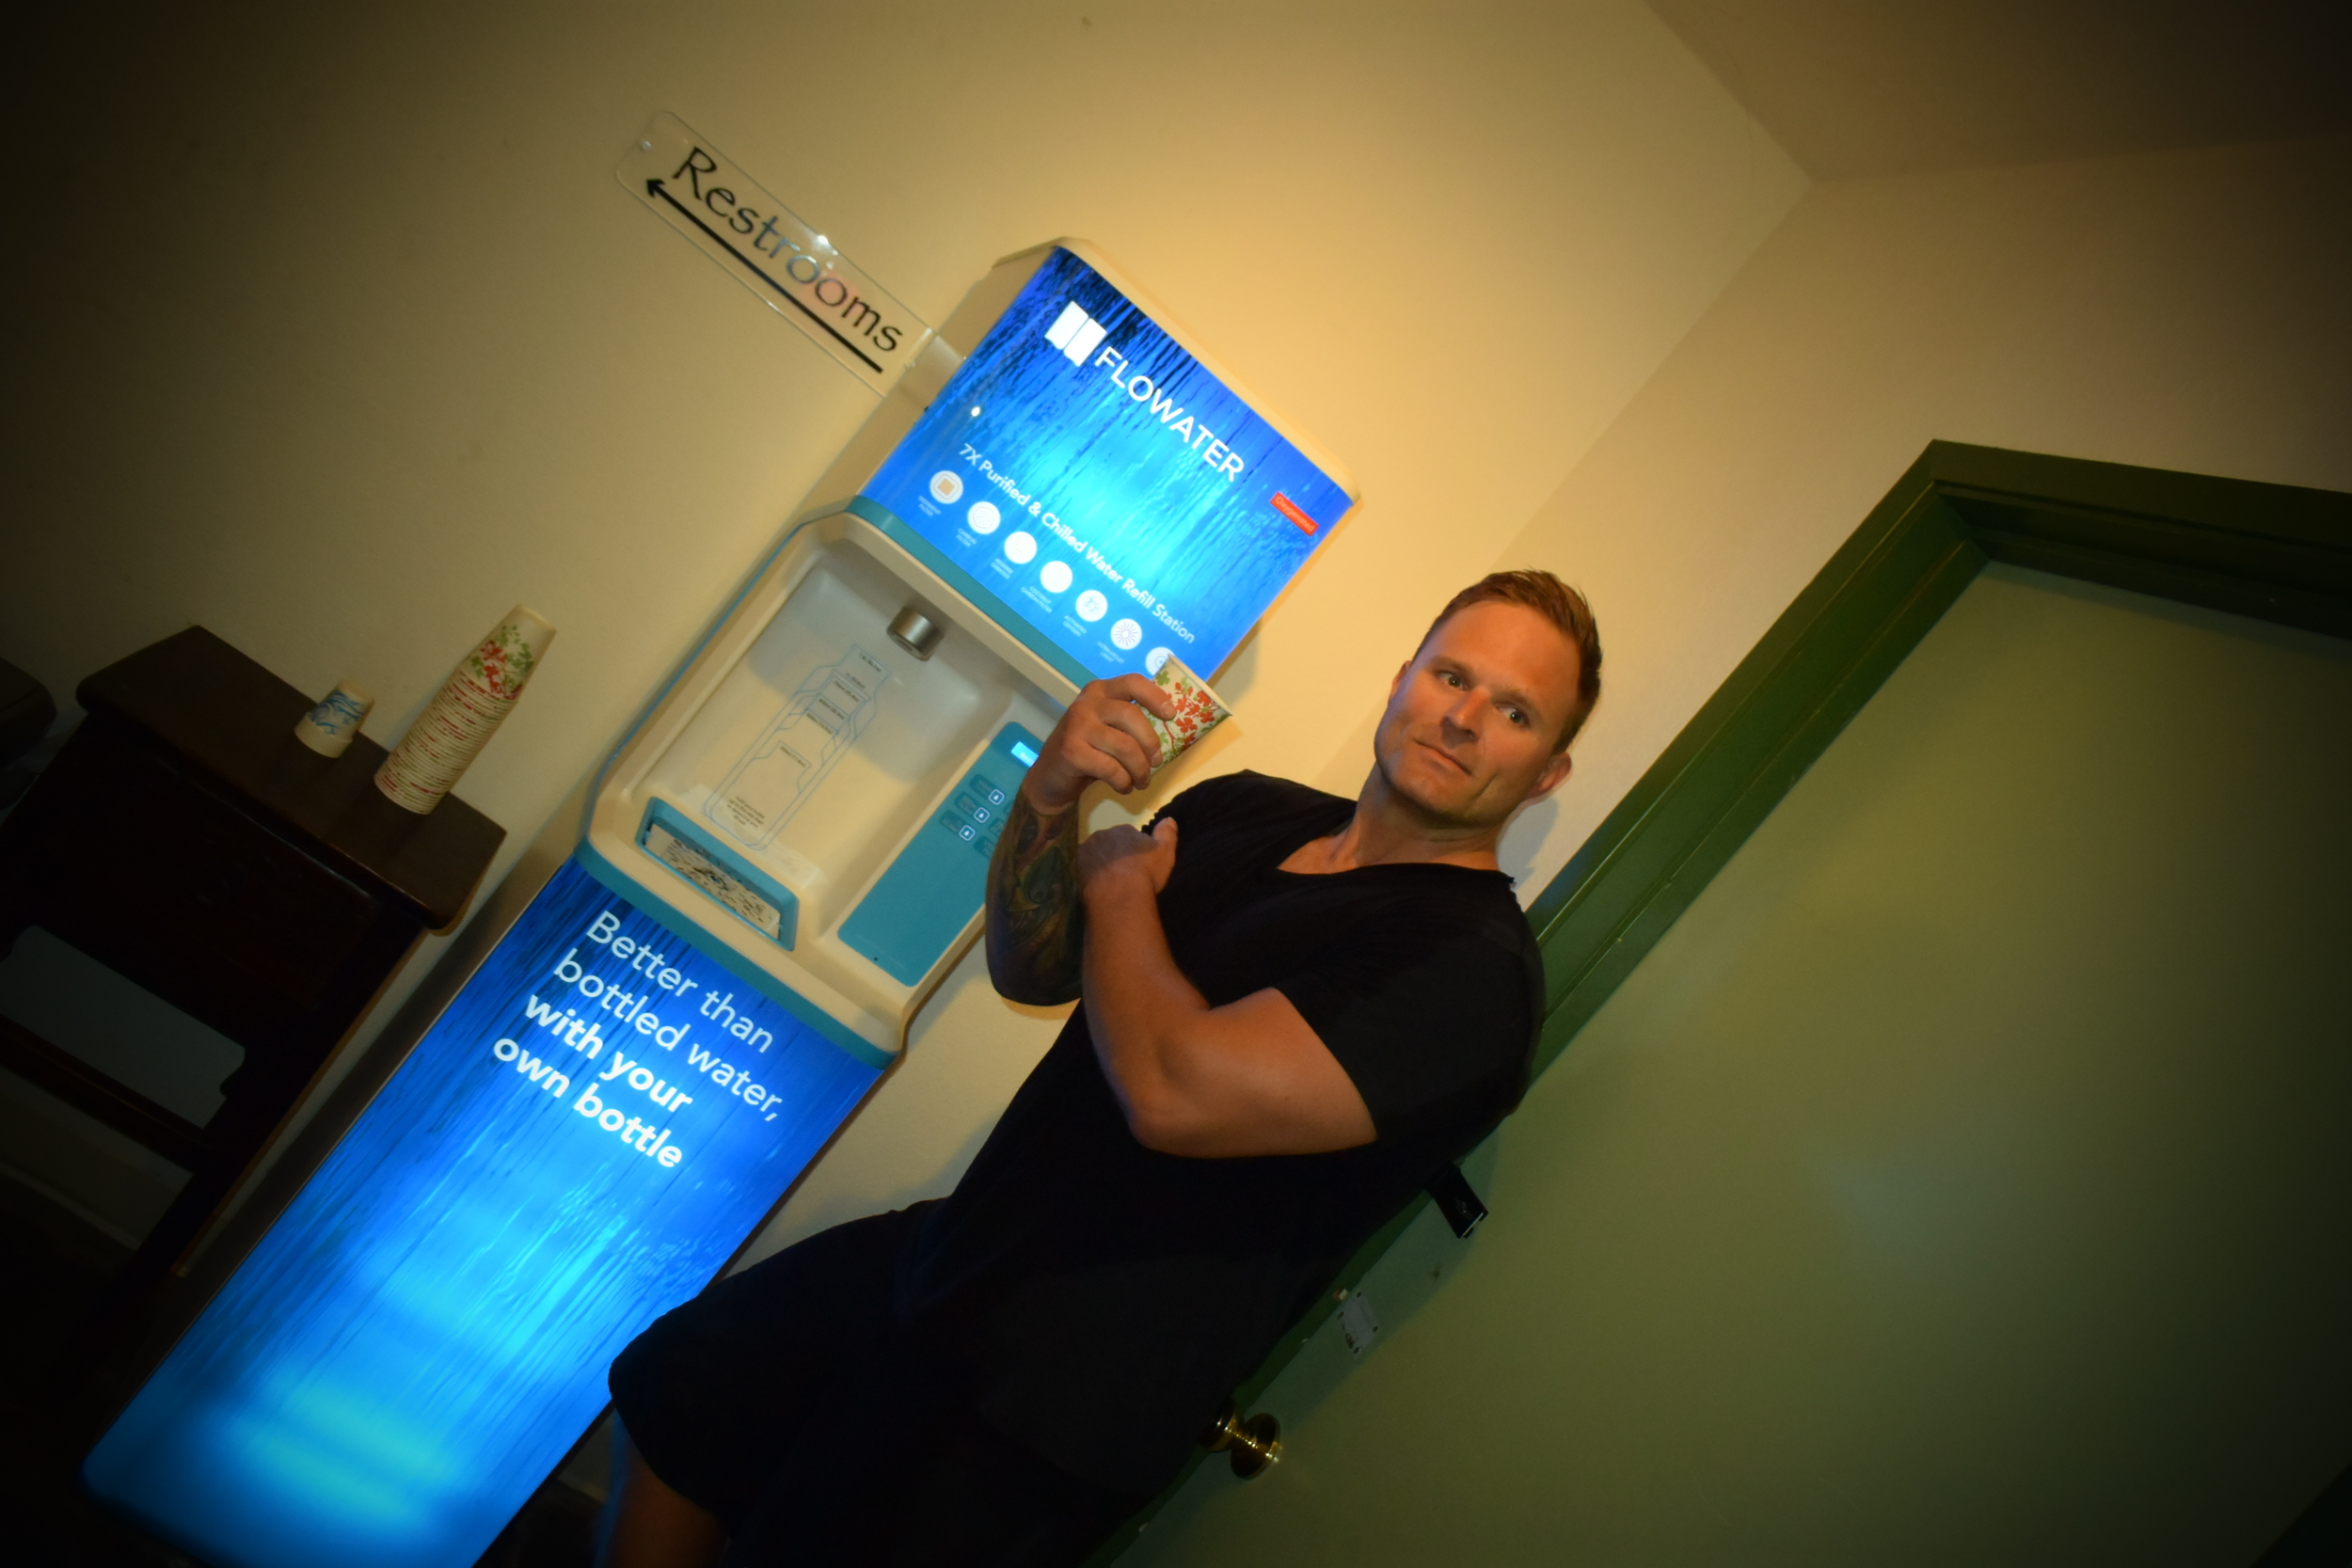 Notice we received our new flowater oxygenated, alkaline water system. DRINK UP and oxygenate and alkinate!  Now for some Vimeo video fun...